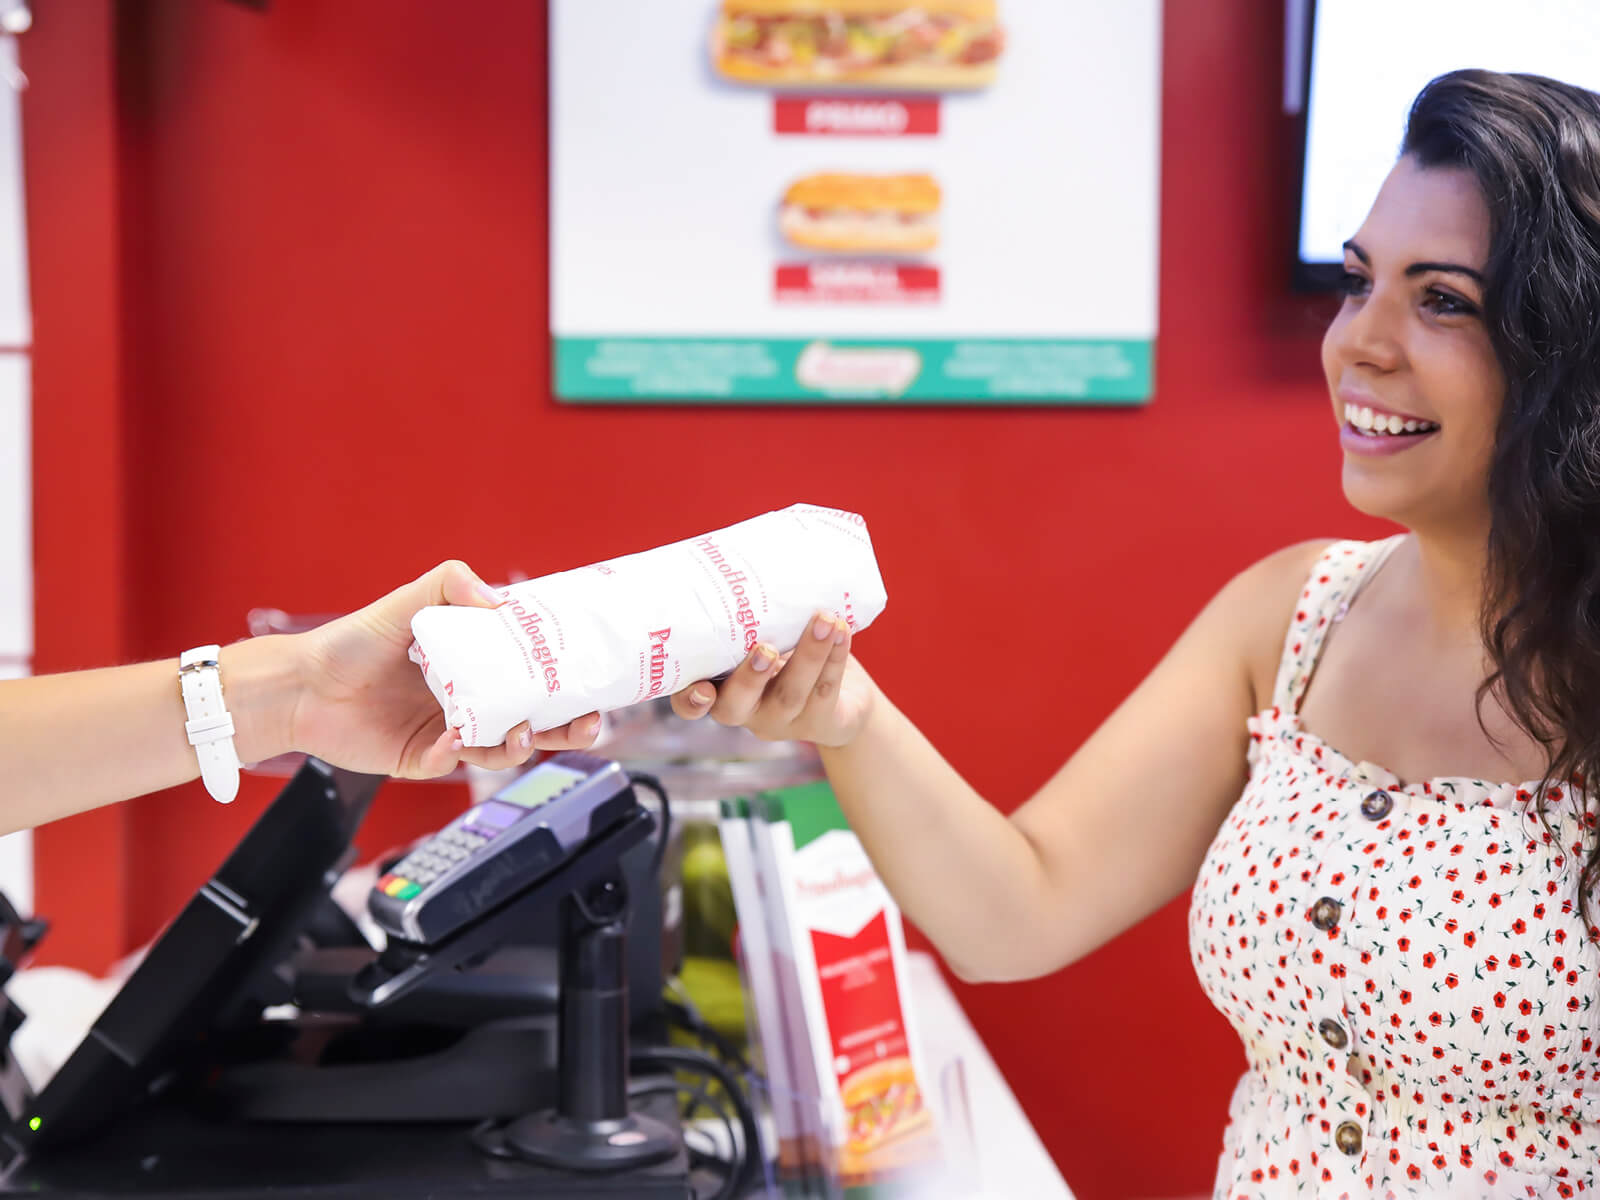 PrimoHoagies Franchise - Quick Casual Service